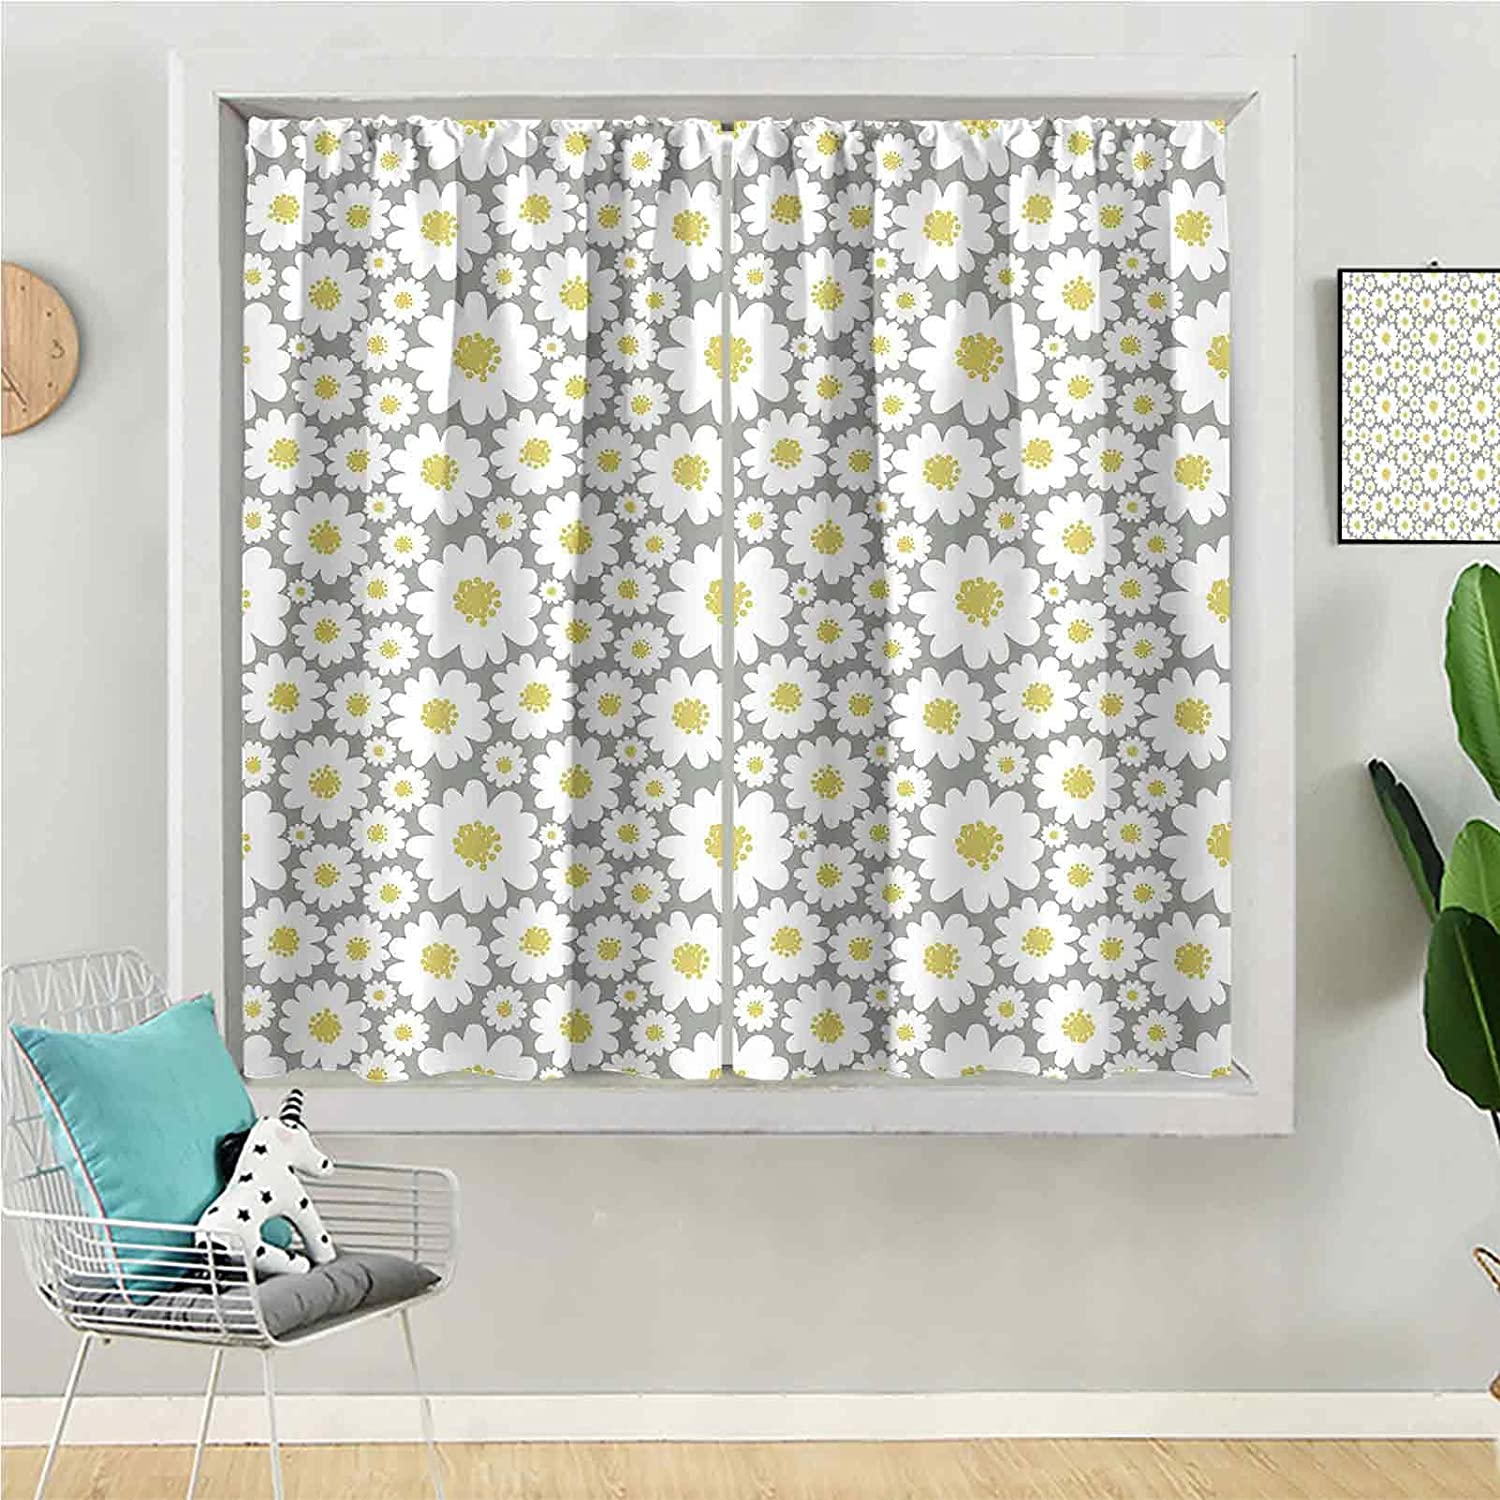 Blackout Curtain 63 Classic inches Long Be Max 81% OFF Window for Kids Panel